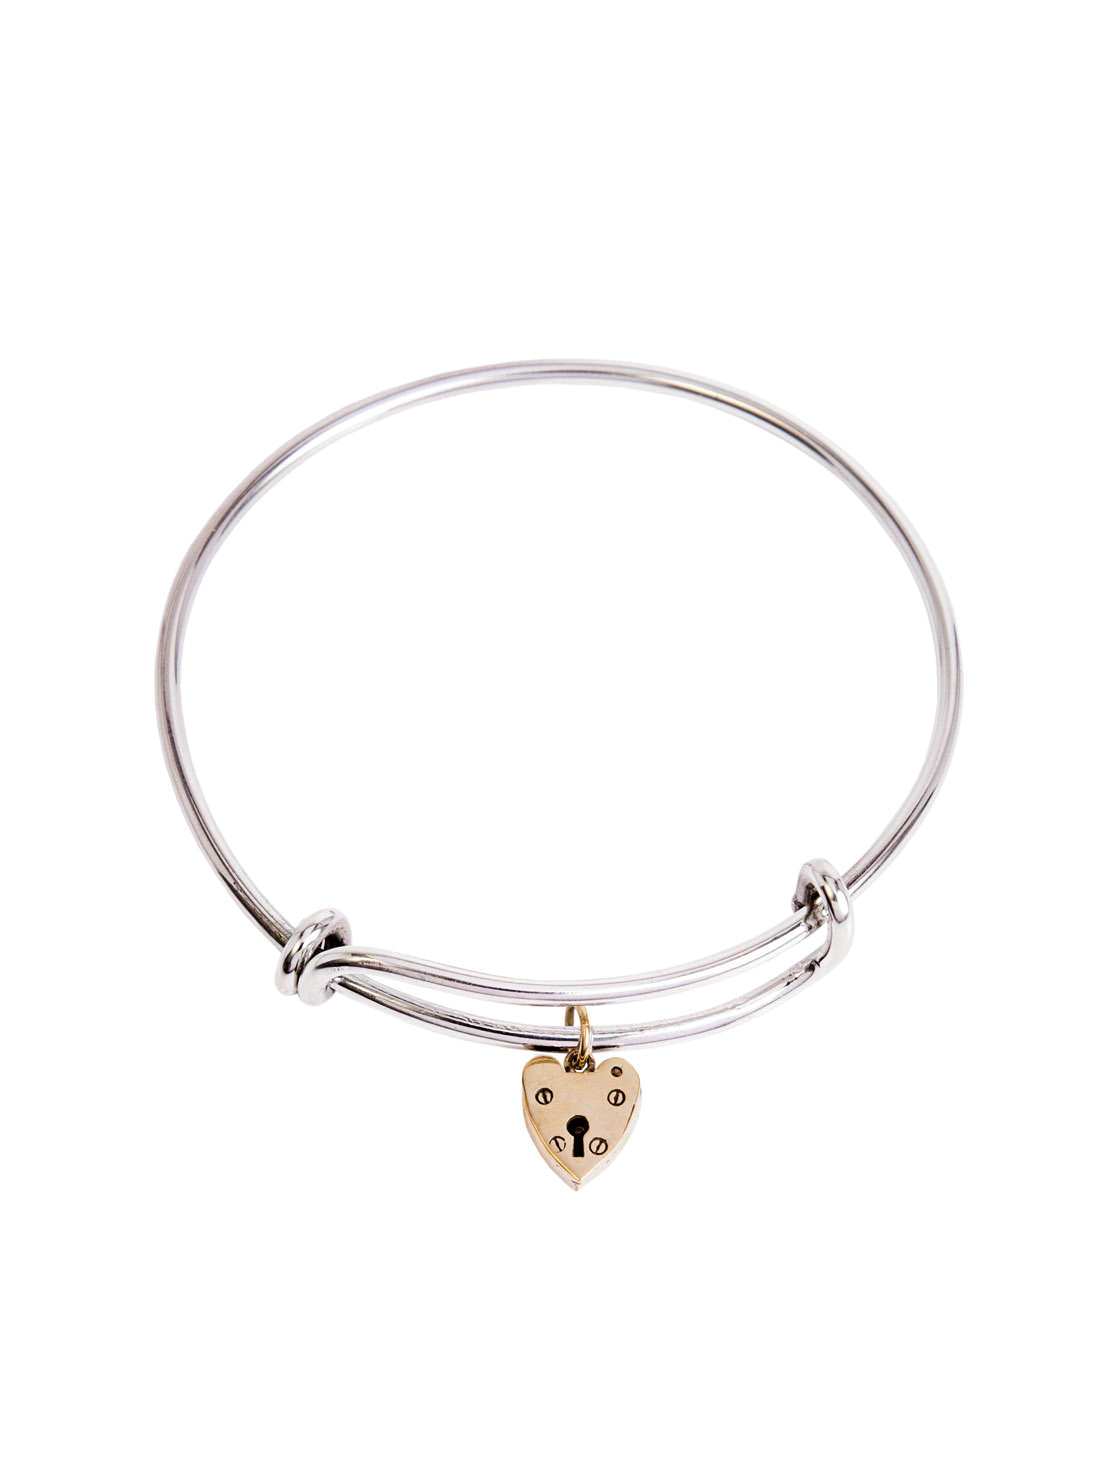 Silver Charm Bangle With Brass Heart